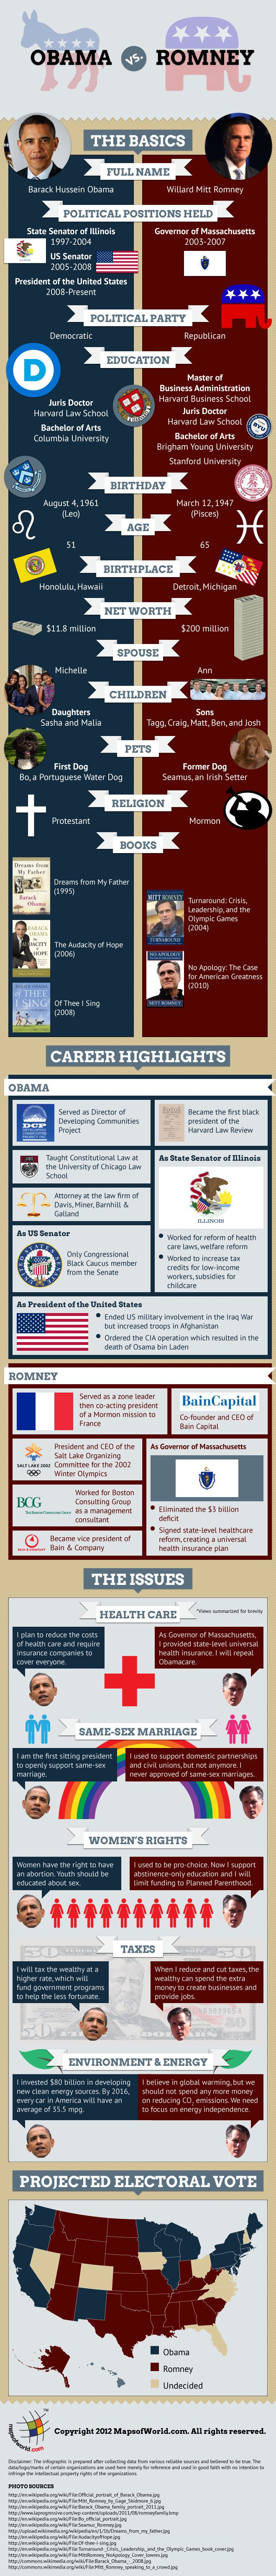 Click On the Image to see the best #Obama Vs #Romney Infographic. #US_Election    Source: http://www.mapsofworld.com/usa/presidential-election/obama-or-romney.html